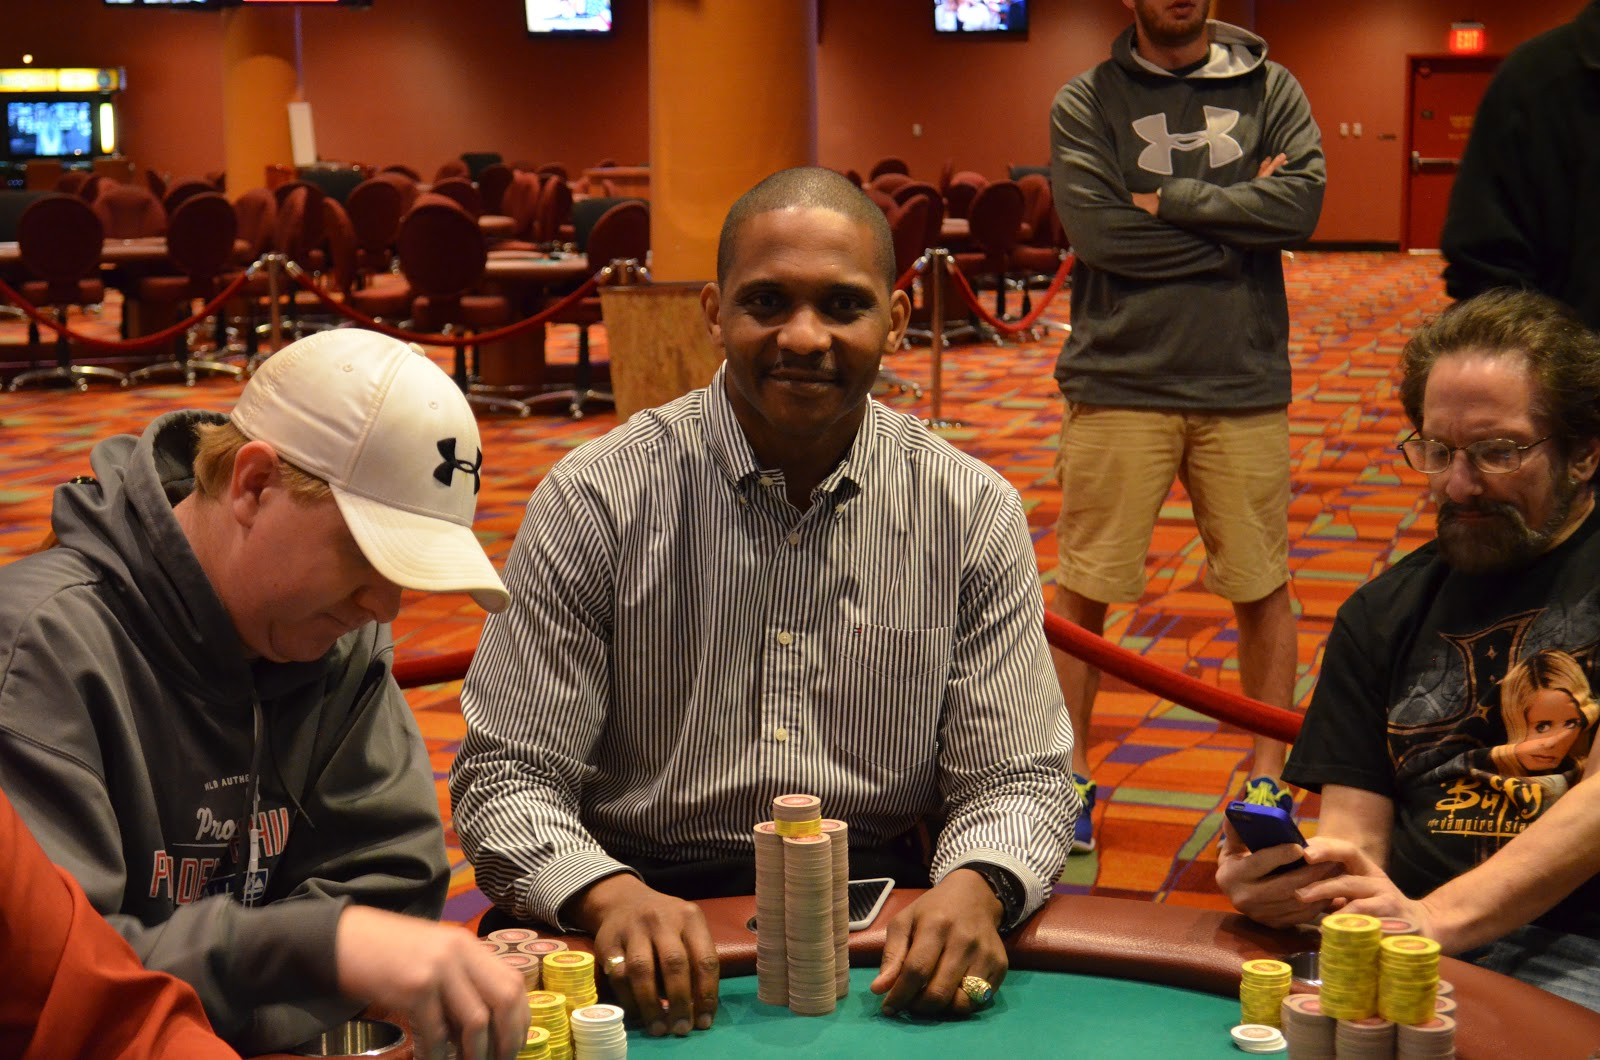 Parxbigstaxii big stax 300 day 3 8th place walker 4 766 for Parx poker room live game report